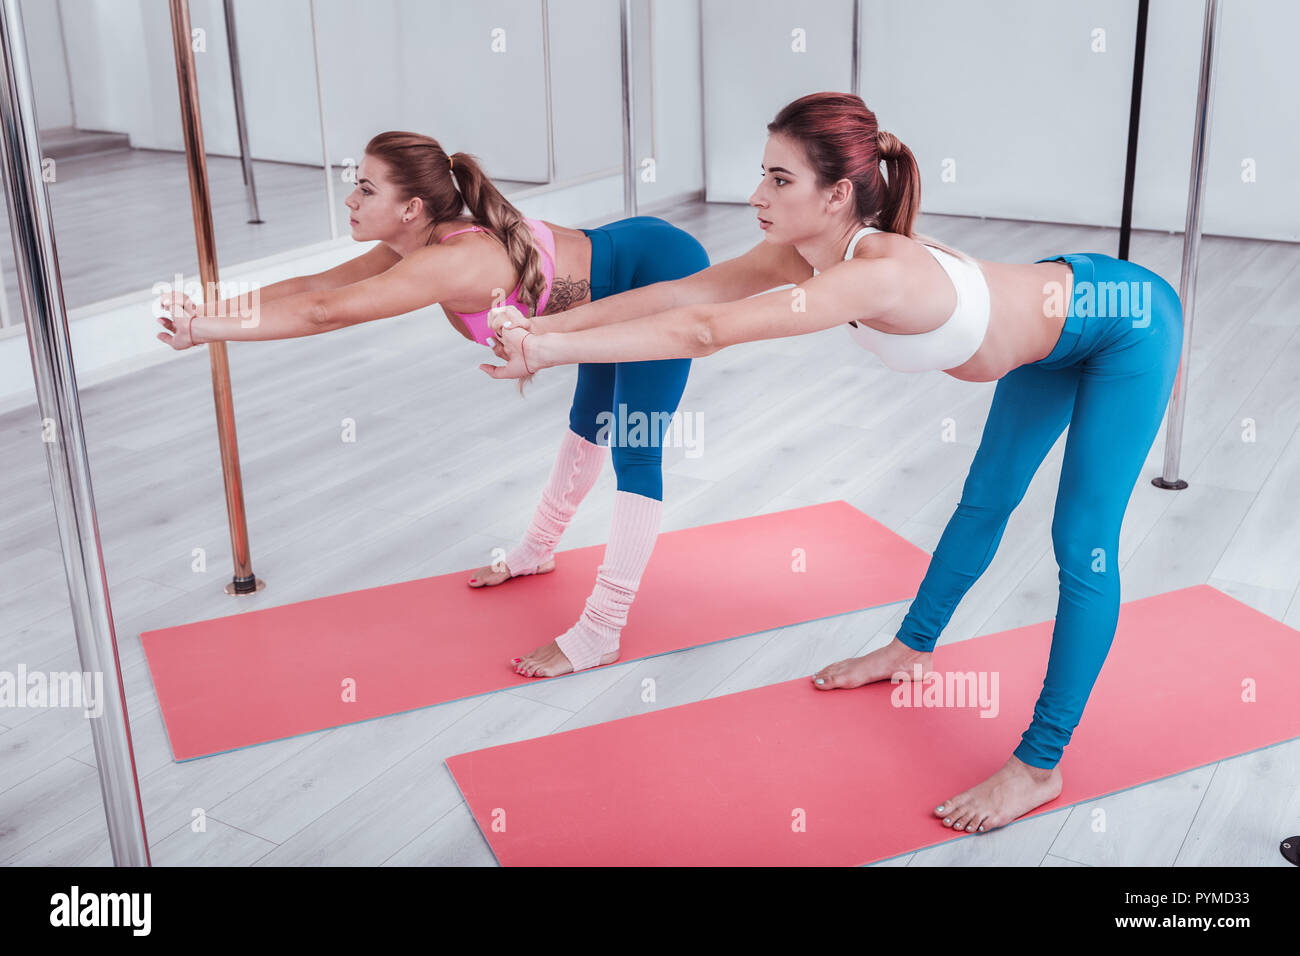 Two pole dancers stretching their legs and backs in pole dance studio - Stock Image